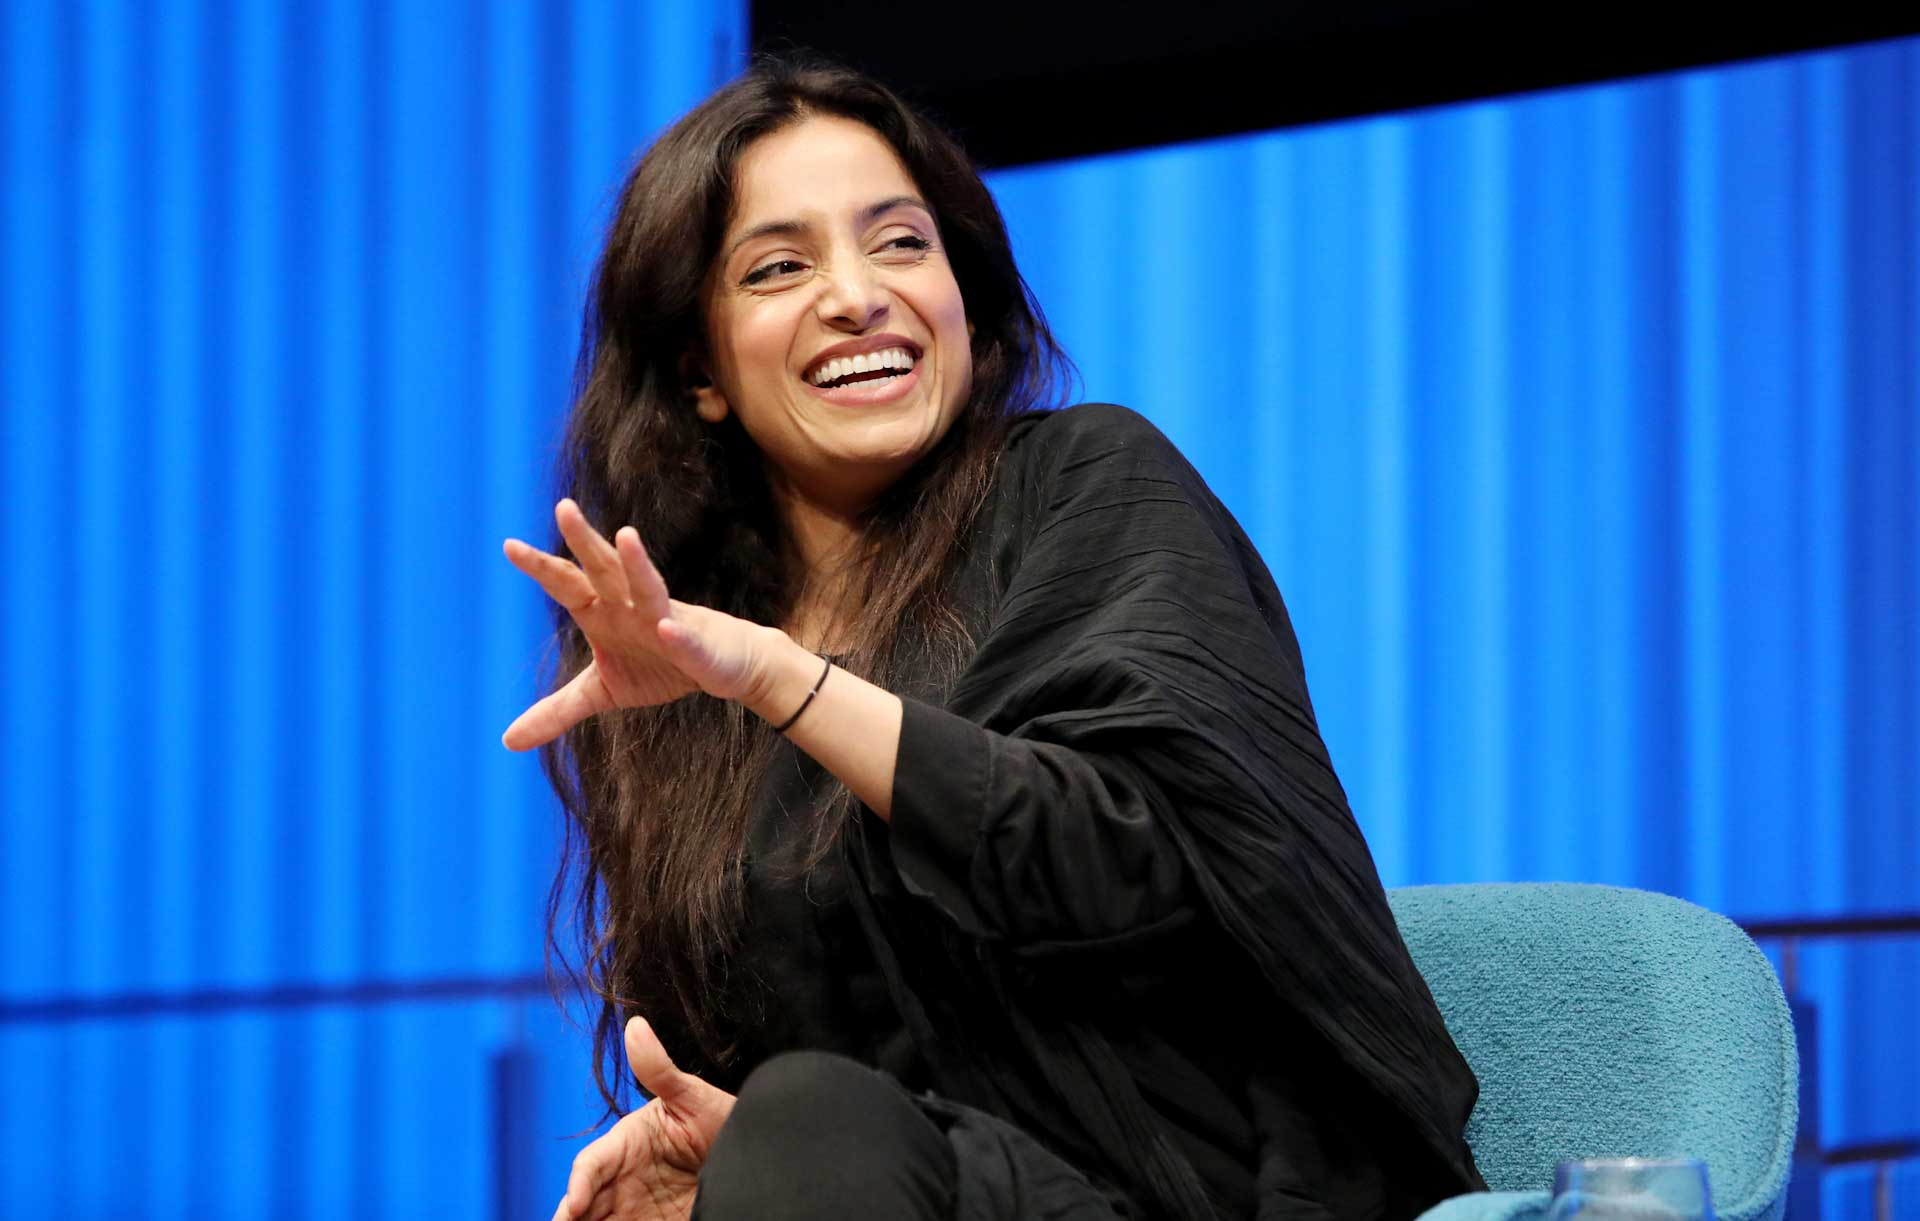 Emmy Award–winning documentarian Deeyah Khan smiles as she leans forward and gestures with her left hand onstage while speaking during a public program at the Museum Auditorium. Curtains behind her are lit up blue.